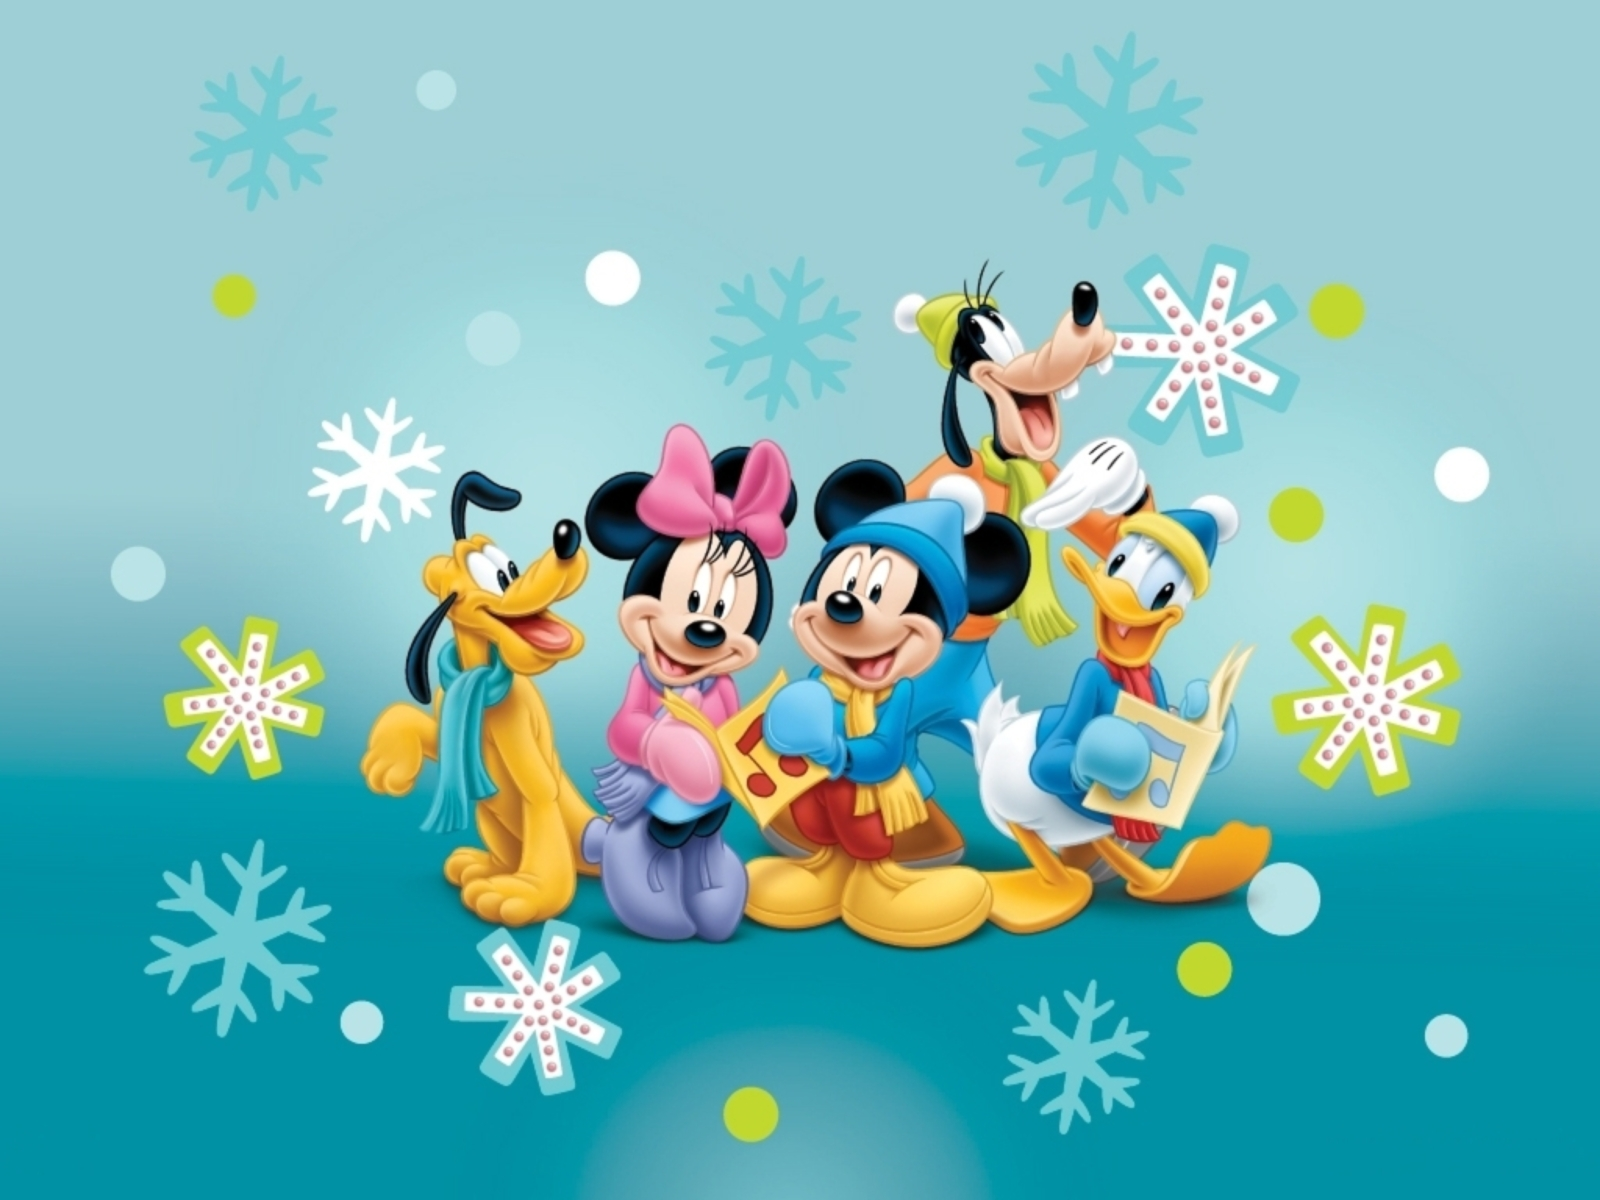 Disney Desktop Backgrounds Pictures 1600x1200